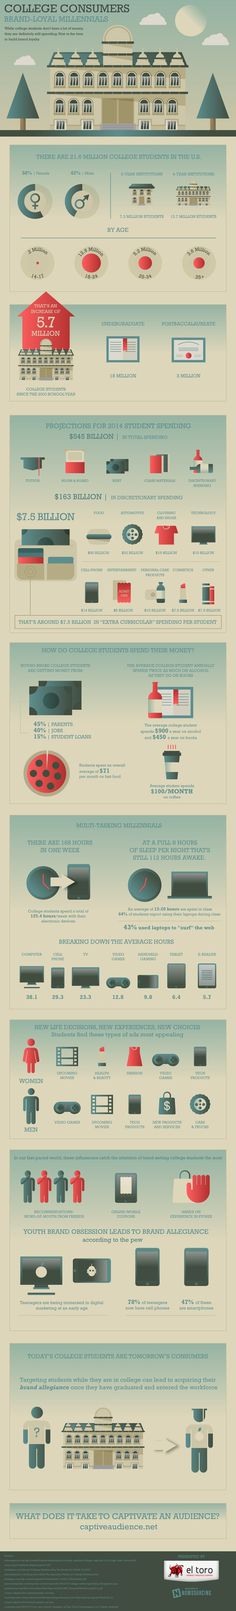 Want to know why your business should be courting college consumers?  Check out this infographic for more.